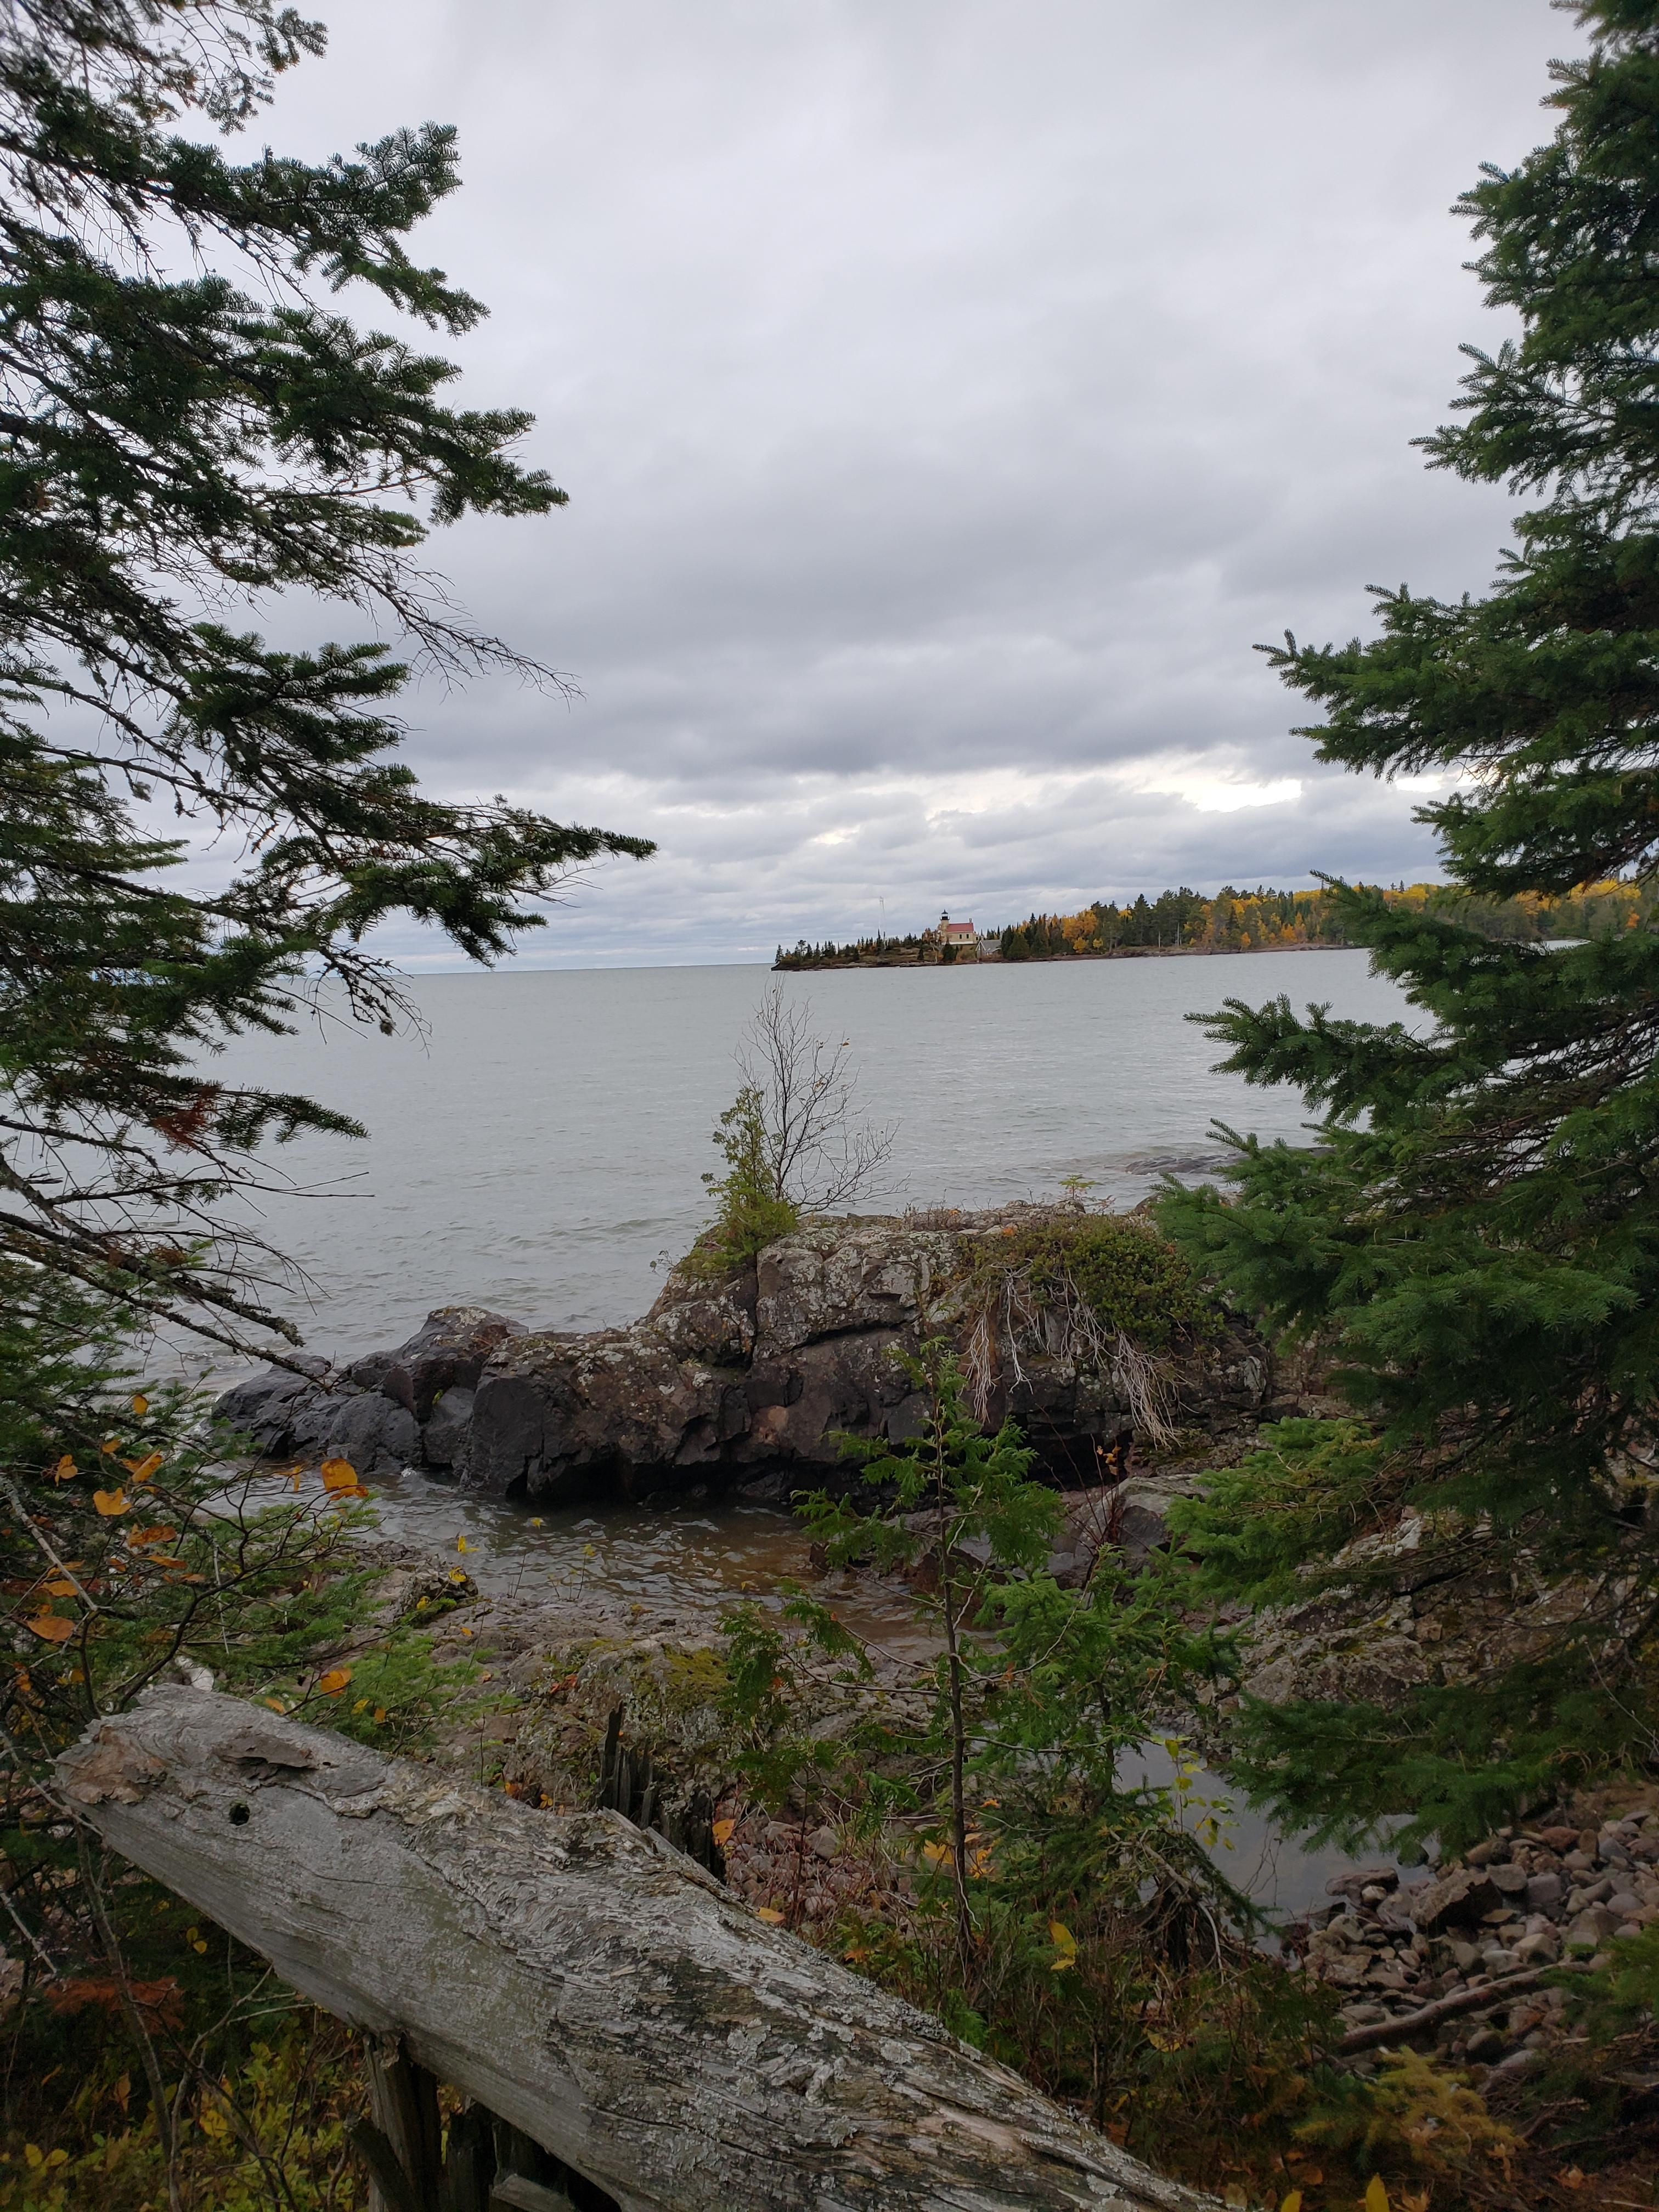 Pin by Dan Adventurer on Camping   Lake superior, Copper harbor